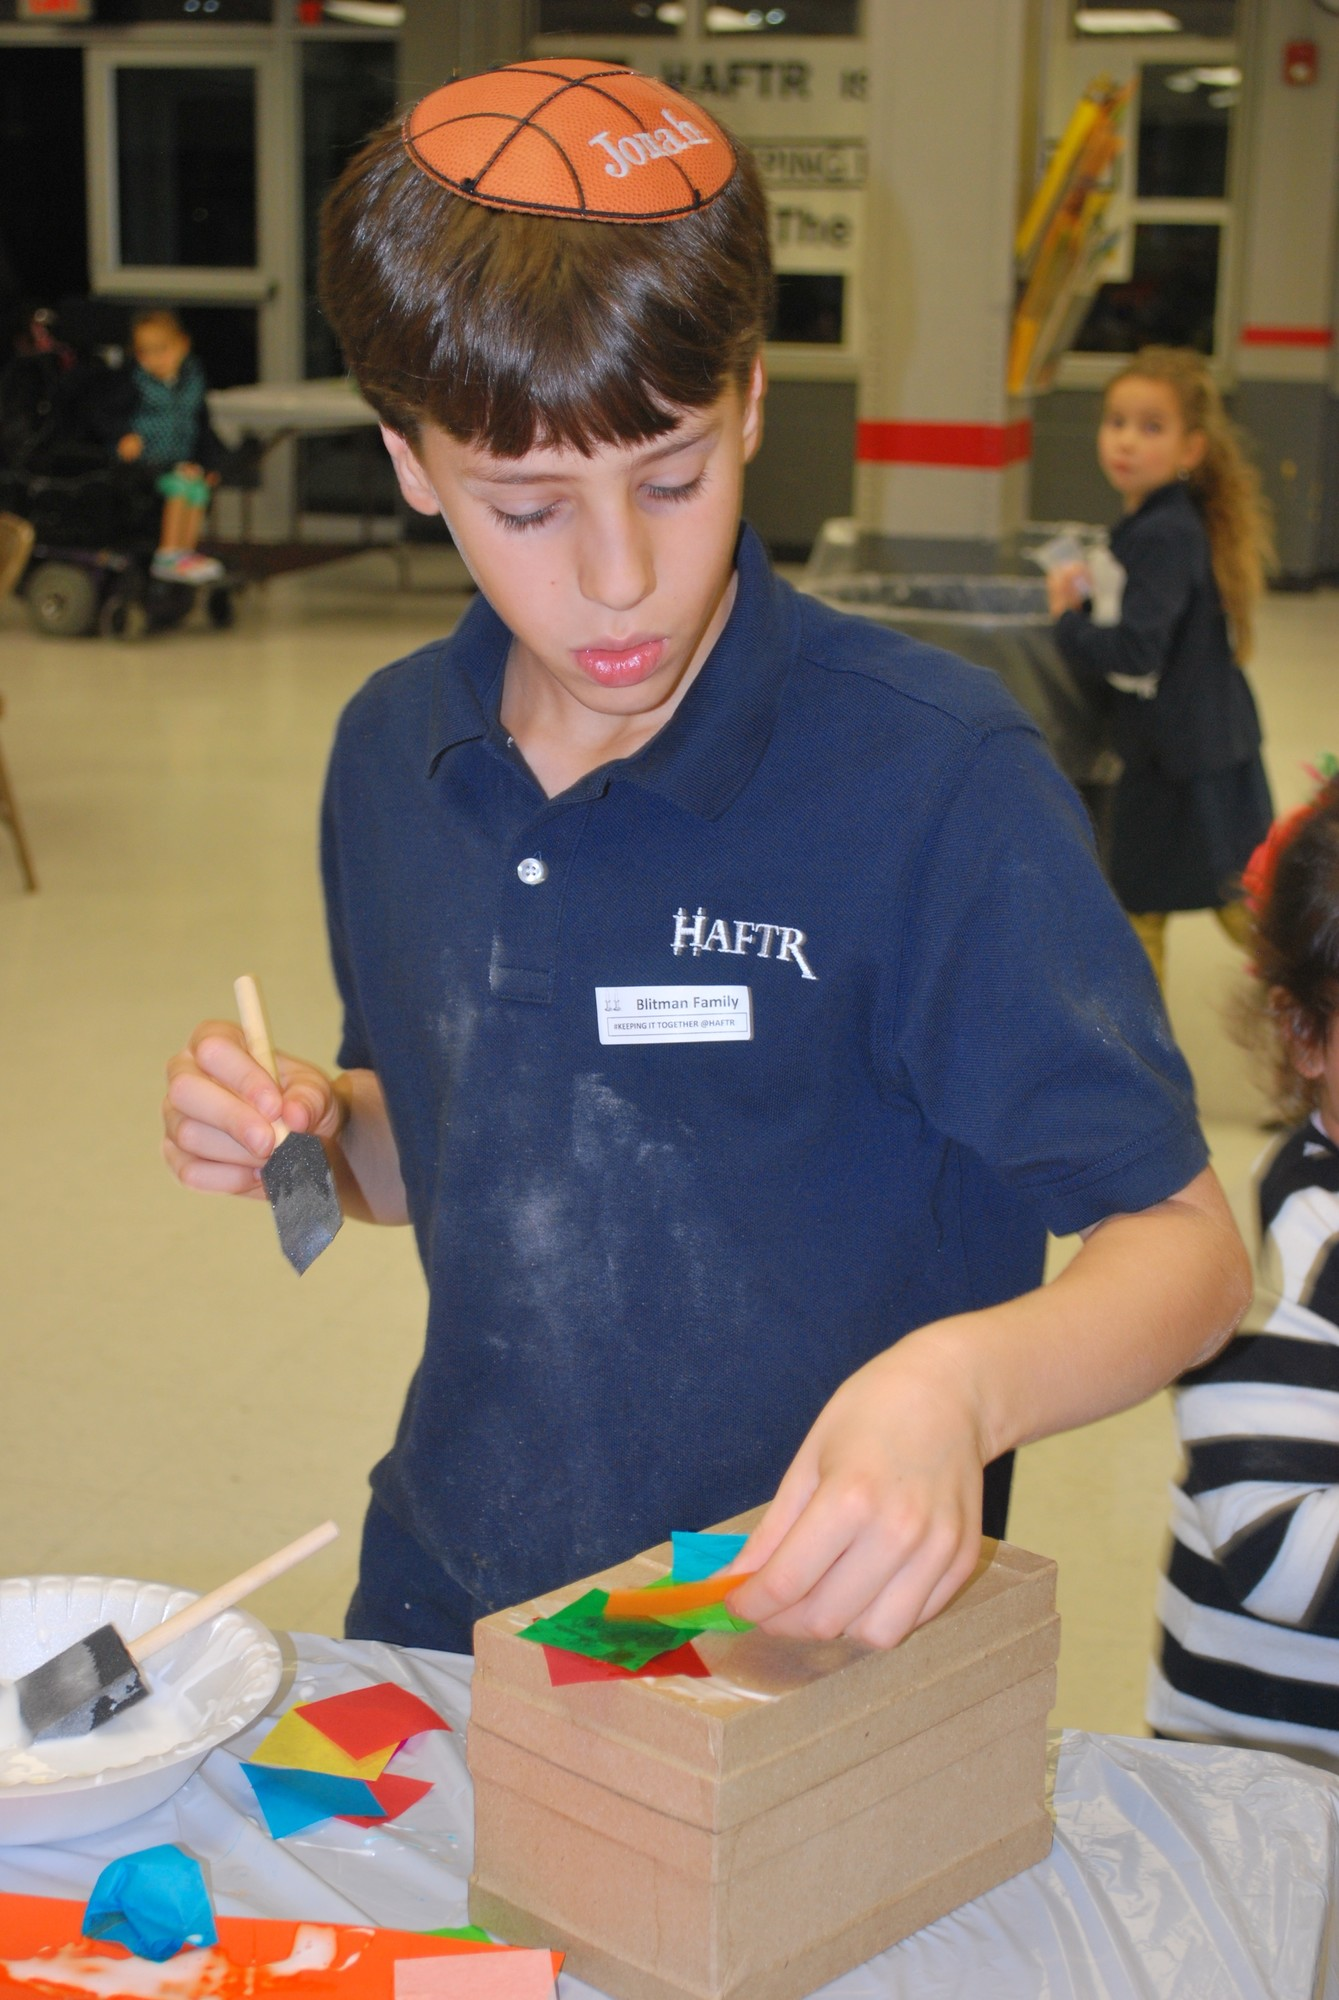 Other activities at HAFTR's challah bake included making muktzah boxes. Fourth-grader Jonah Blittman, 9, decorated his creation.